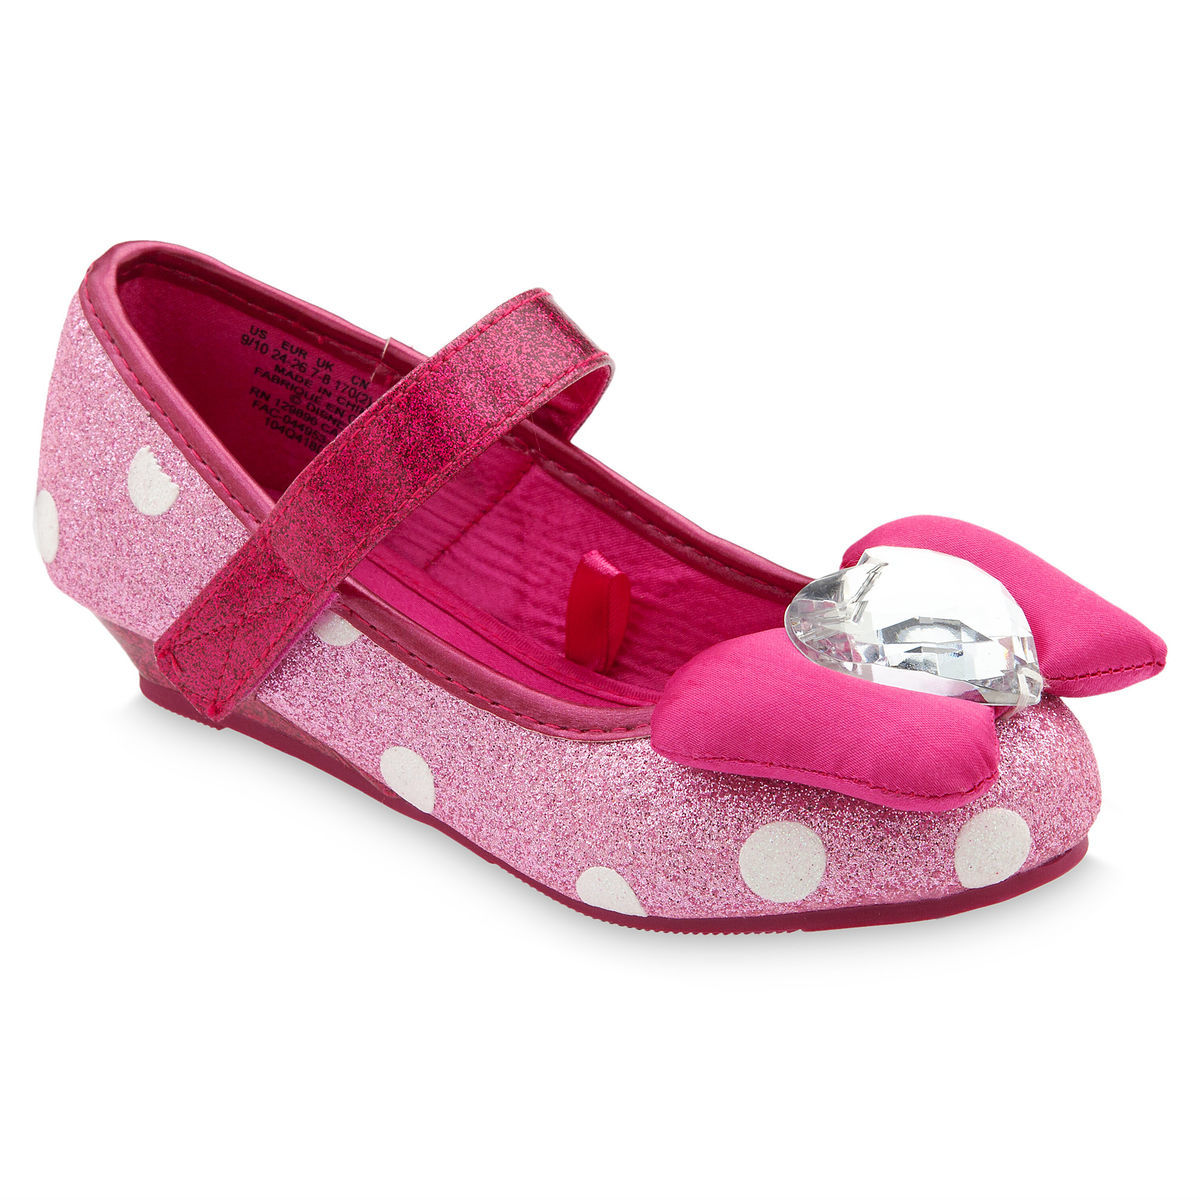 5f2c29c82558 Product Image of Minnie Mouse Costume Shoes for Kids - Pink   1